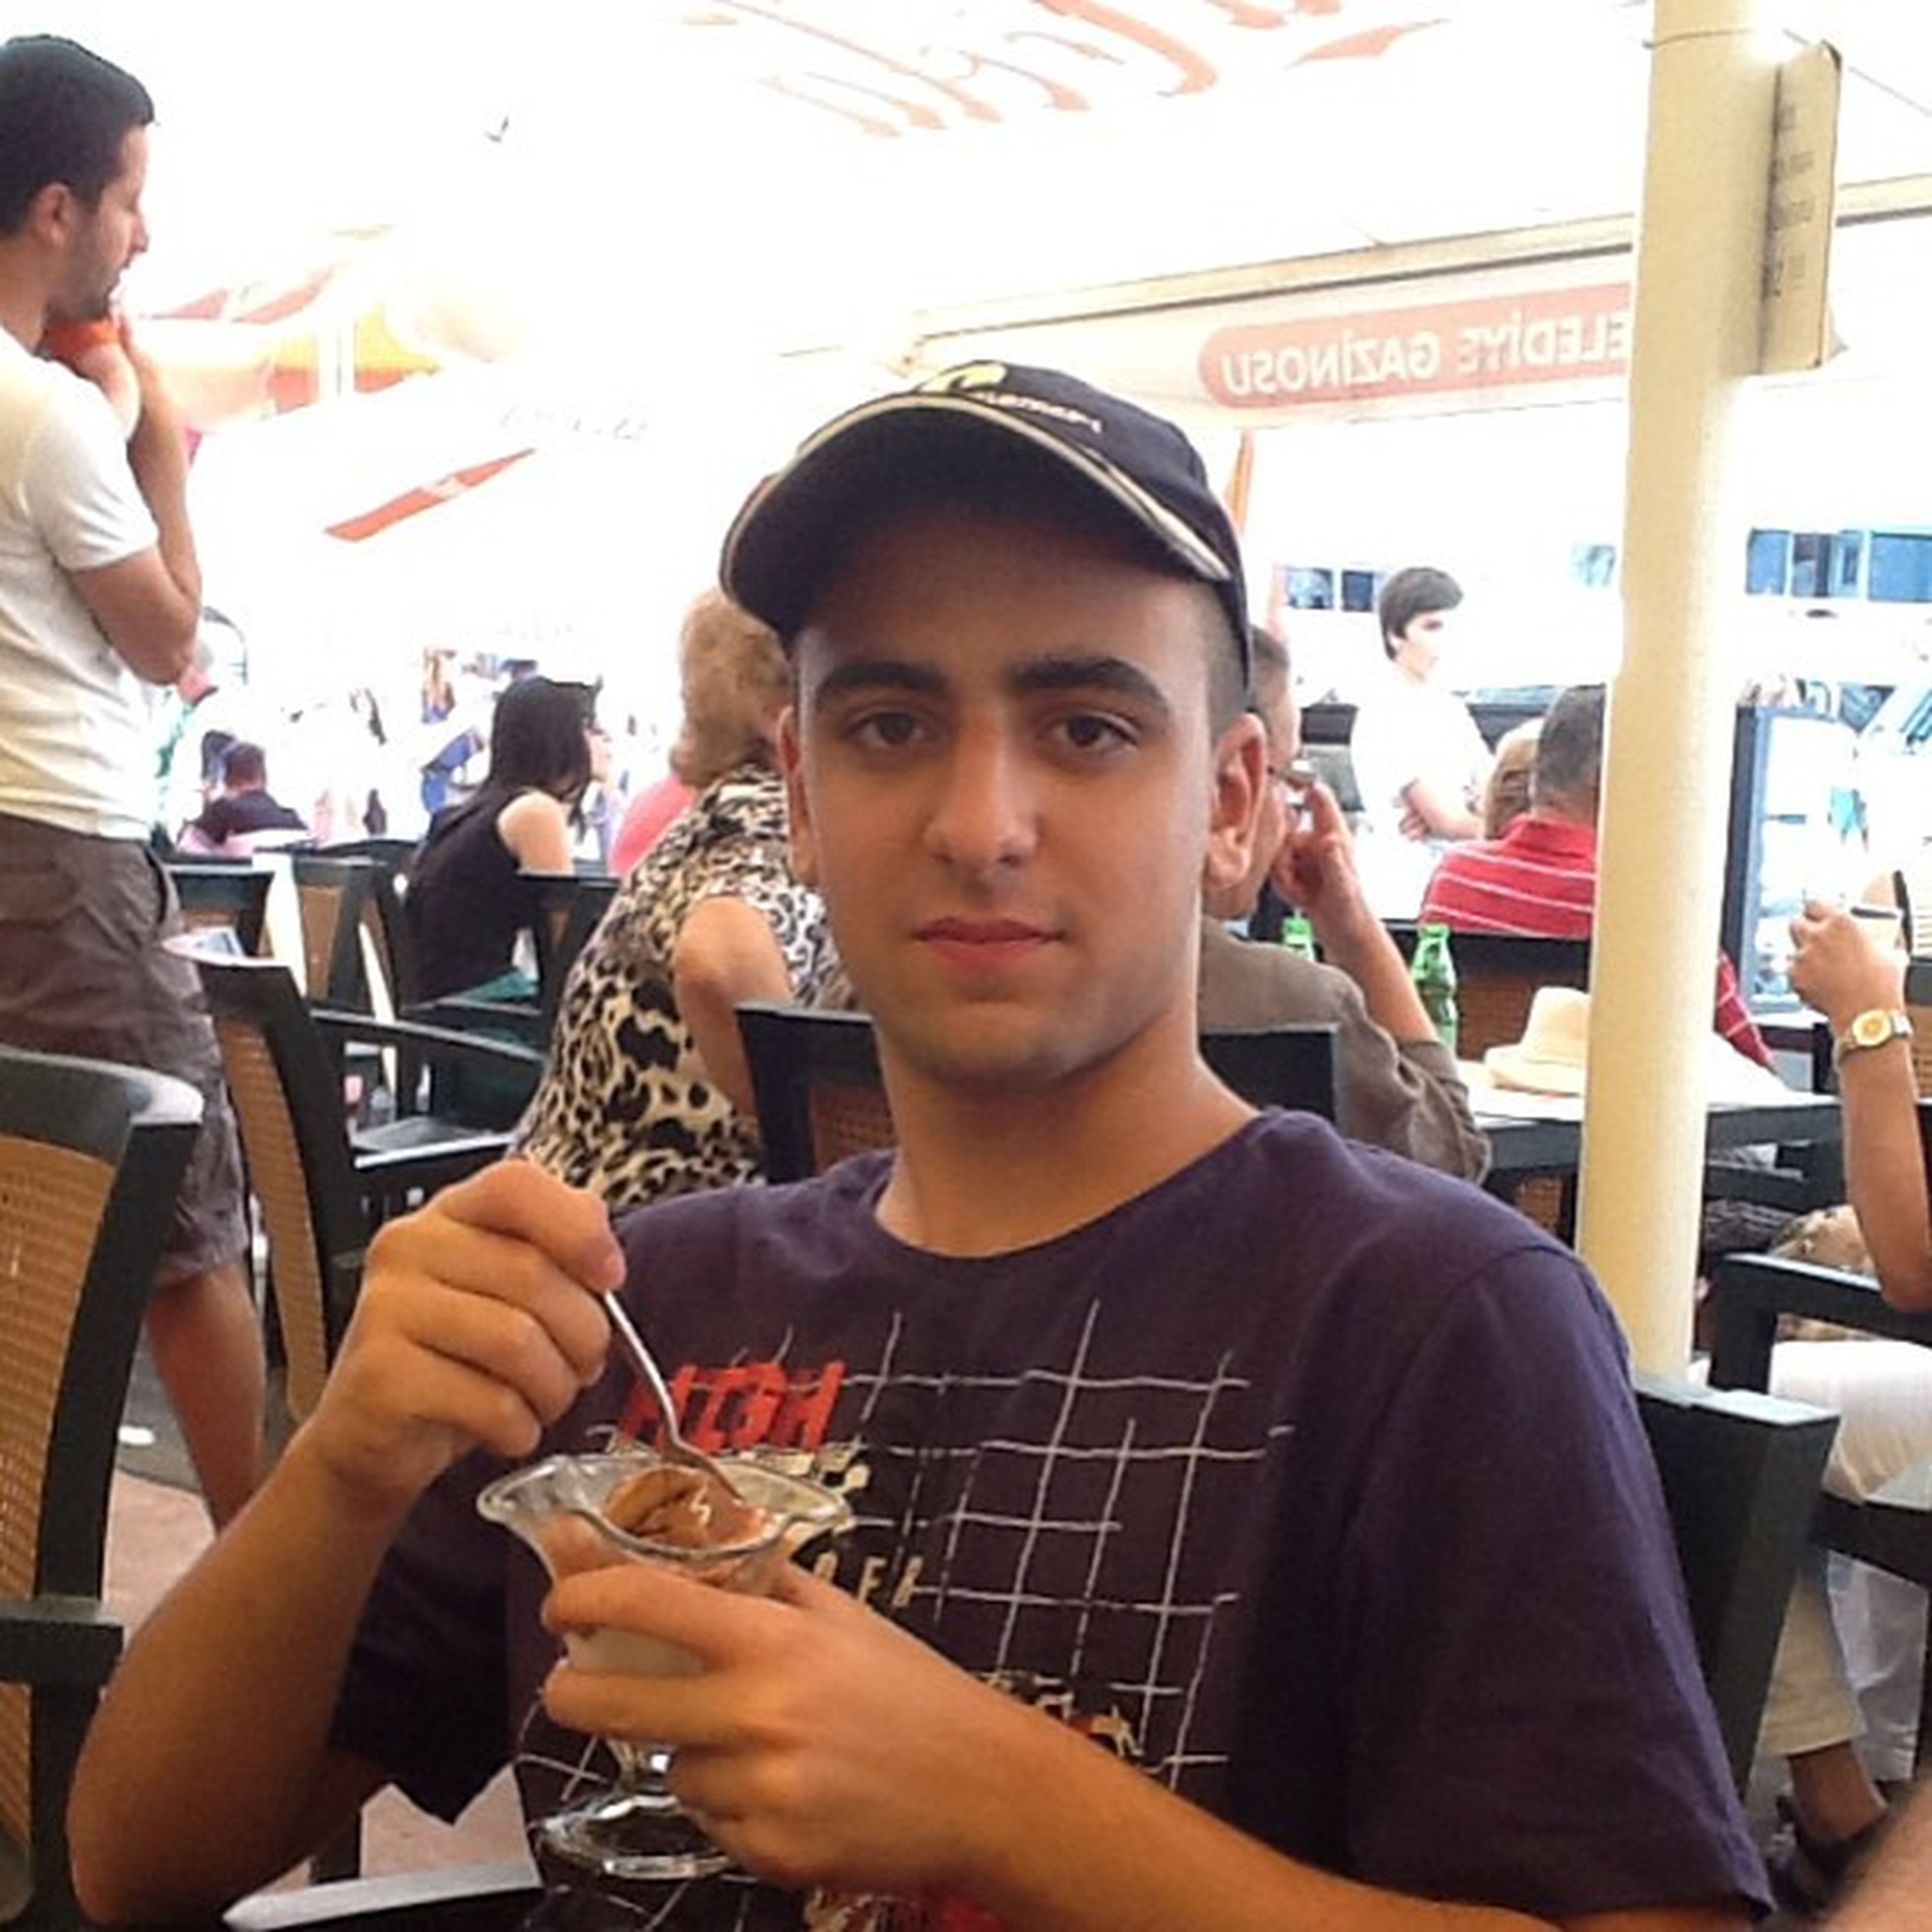 lifestyles, indoors, food and drink, leisure activity, person, holding, casual clothing, young men, communication, young adult, sitting, restaurant, portrait, front view, looking at camera, smiling, waist up, happiness